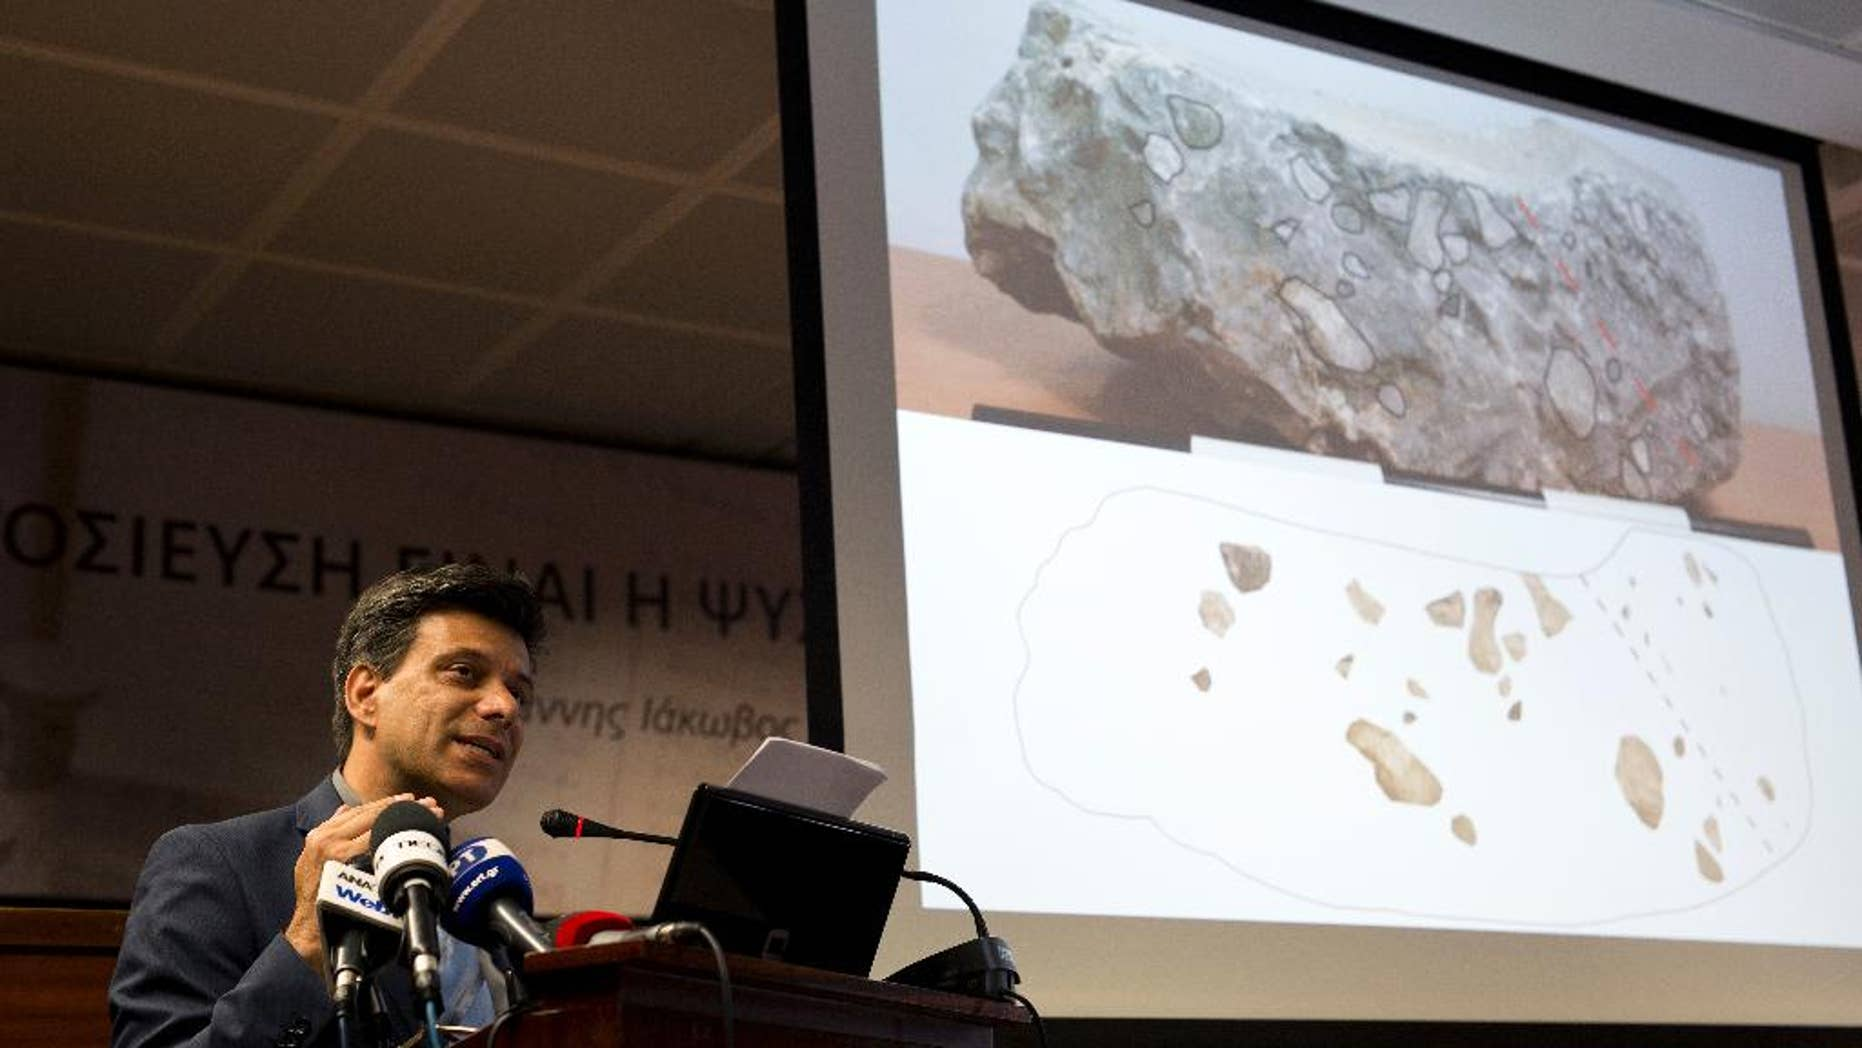 Greek archaeologist Christofilis Maggidis speaks as a photograph of a stone he believes belonged to the lost royal throne in the ancient palace of Mycenae, heart of the Mycenaean civilization, in southern Greece, during a press conference in Athens, on Tuesday, June 14, 2016. Maggidis says the worked stone, found by chance two years ago under the prehistoric citadel, is a chunk of the monolithic throne that was smashed when an earthquake sent part of the palace tumbling into a streambed below. (AP Photo/Petros Giannakouris